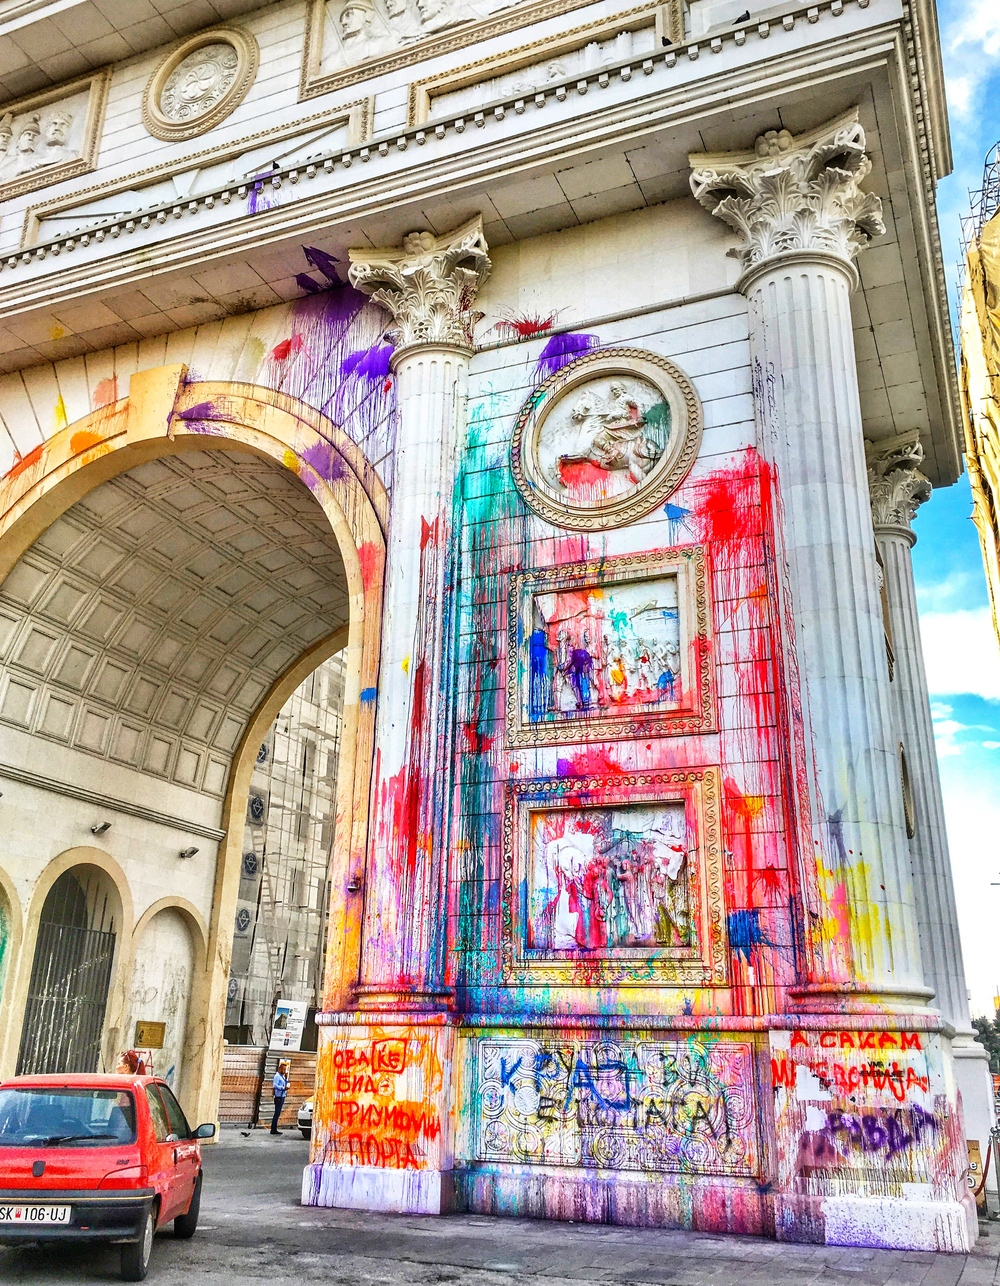 Skopje's arc de triumph covered in exploded paint balloons